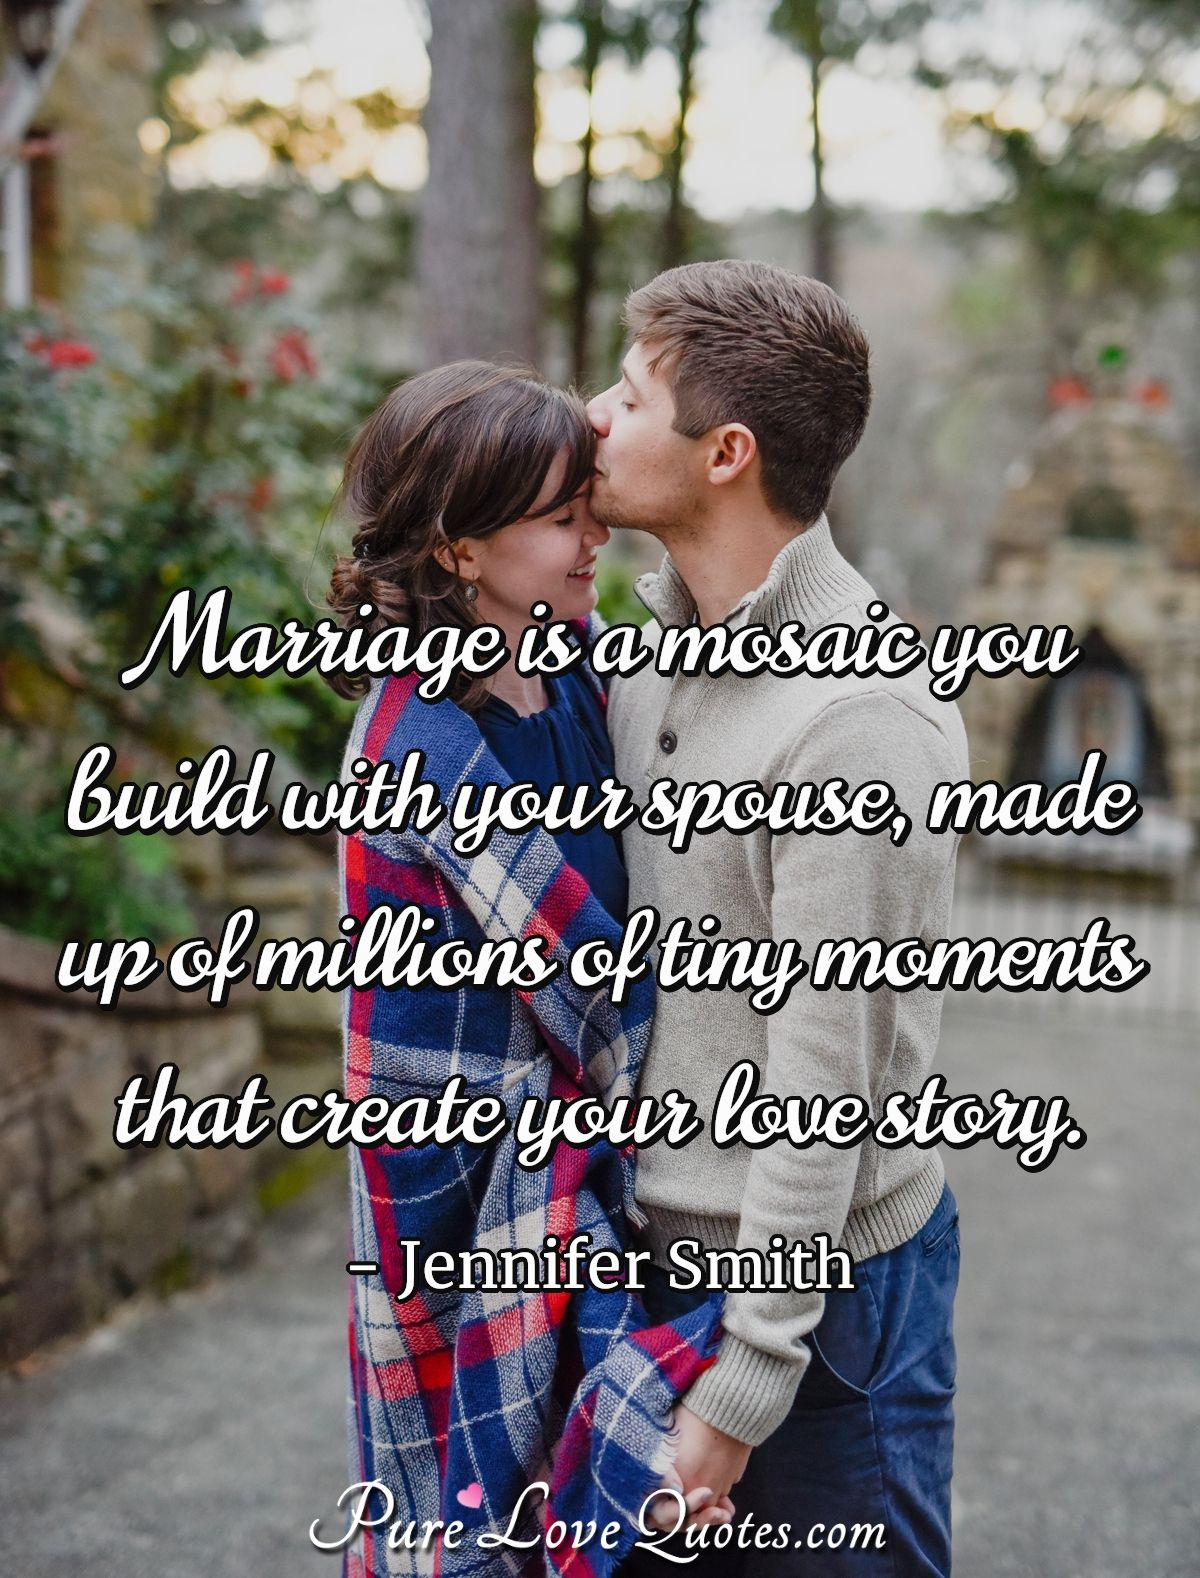 Marriage is a mosaic you build with your spouse, made up of millions of tiny moments that create your love story. - Jennifer Smith